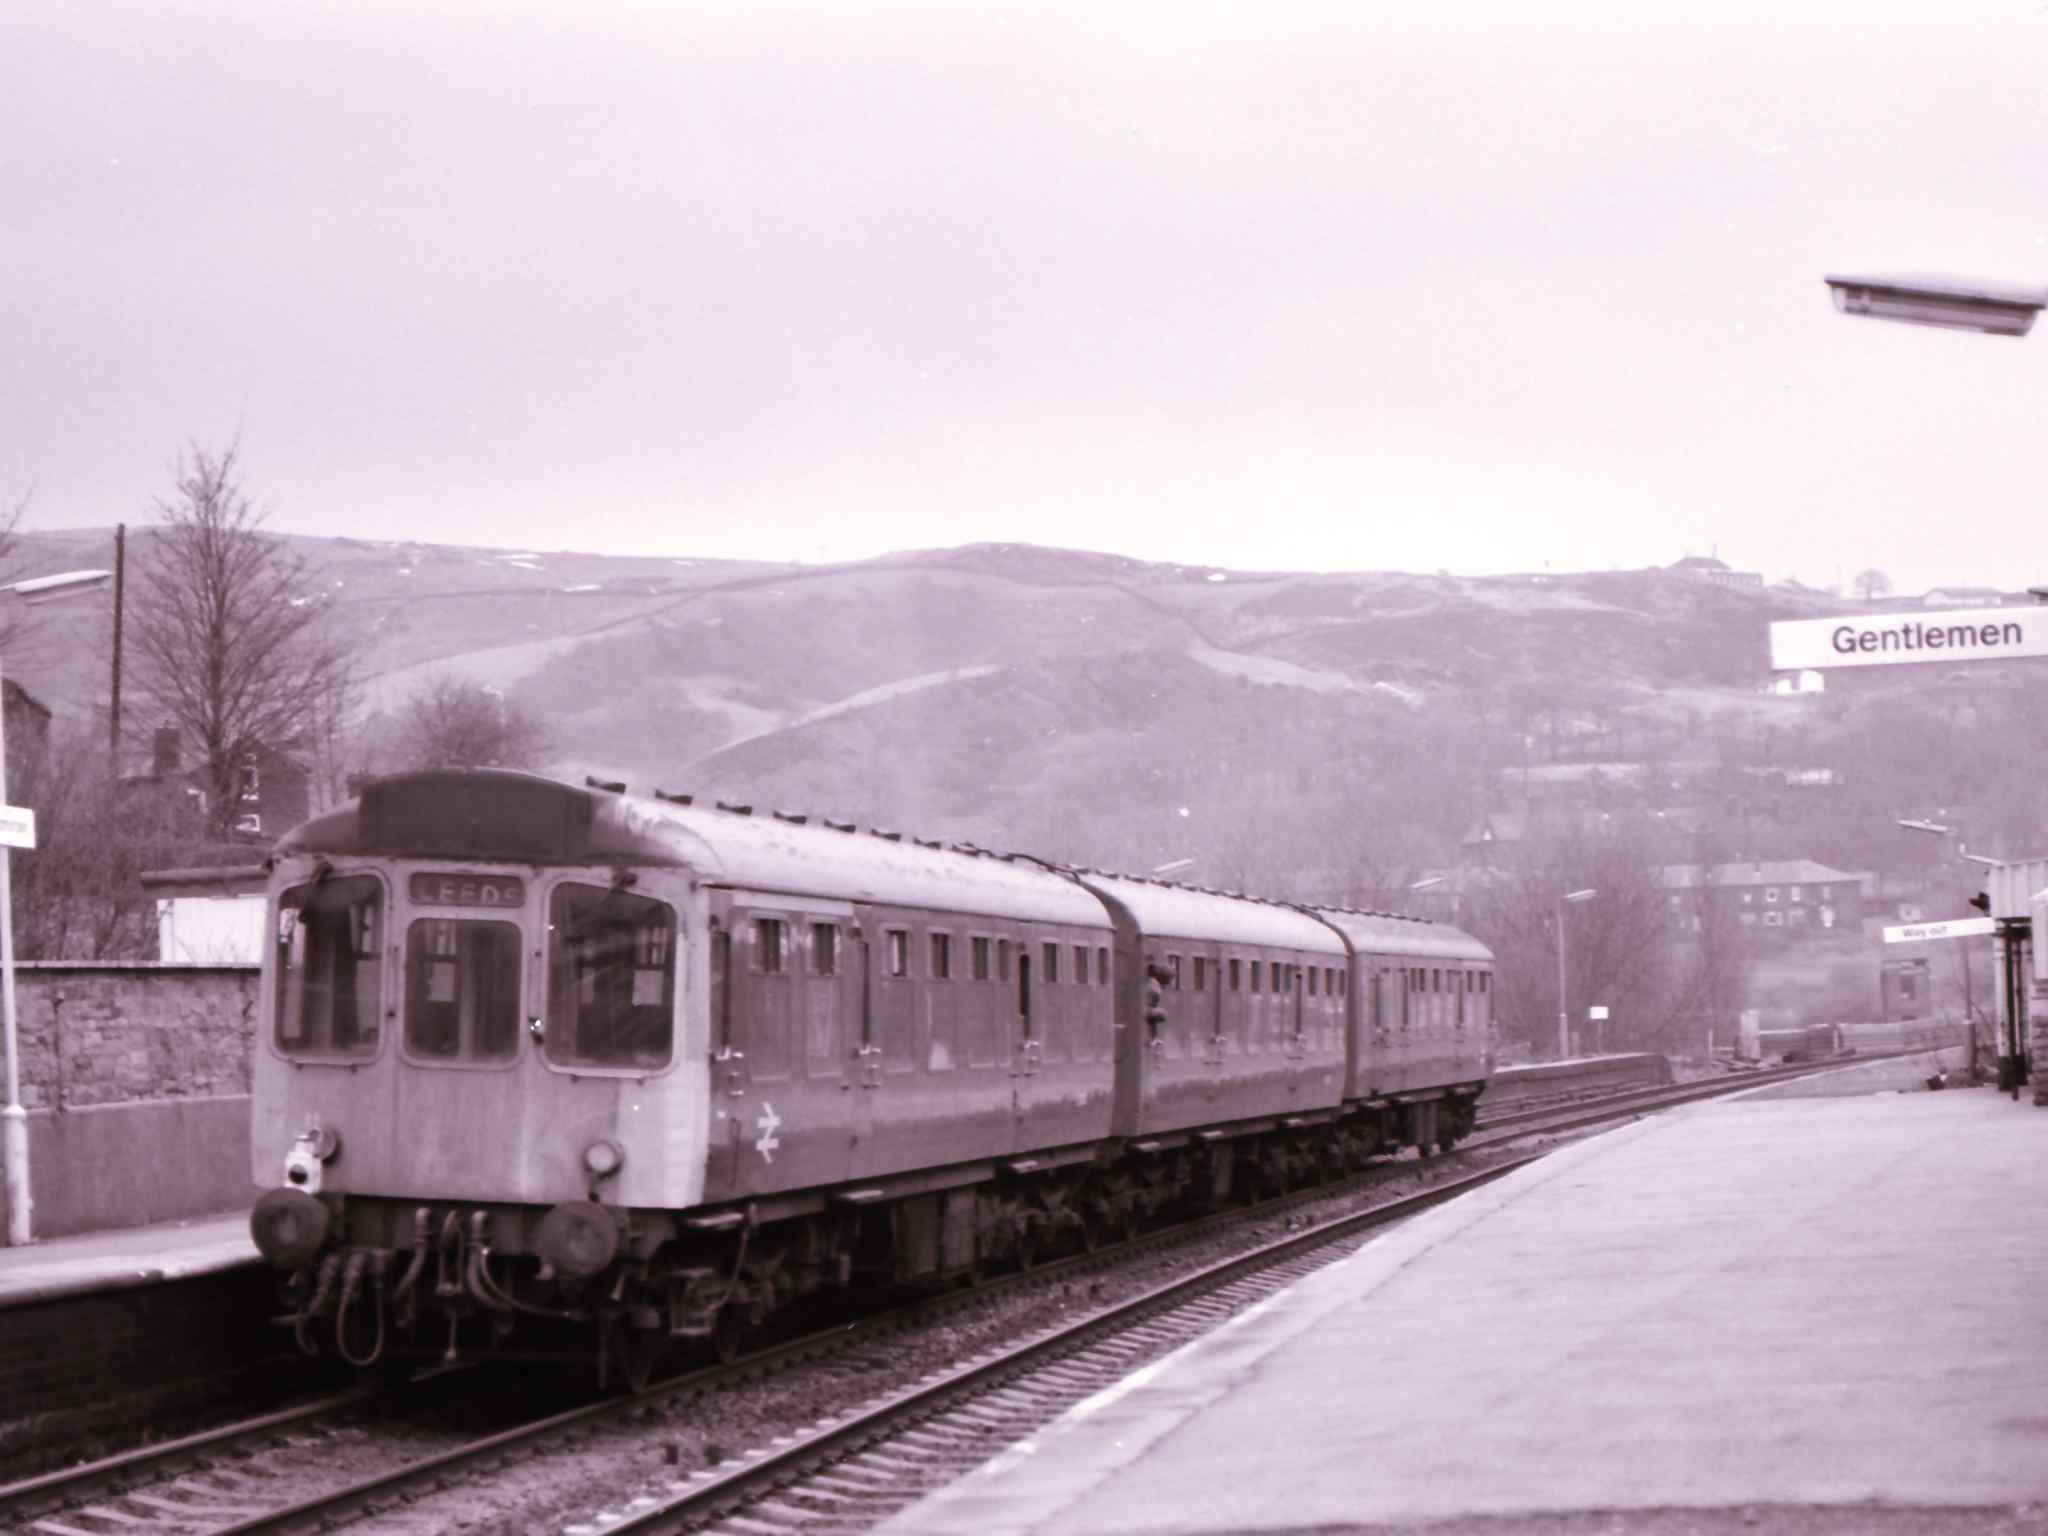 Class 110 Calder Valley unit departs from Todmorden towards Leeds on the down Manchester. The unit is in BR corporate blue and still has three cards, although the headcoe box has been painted over.